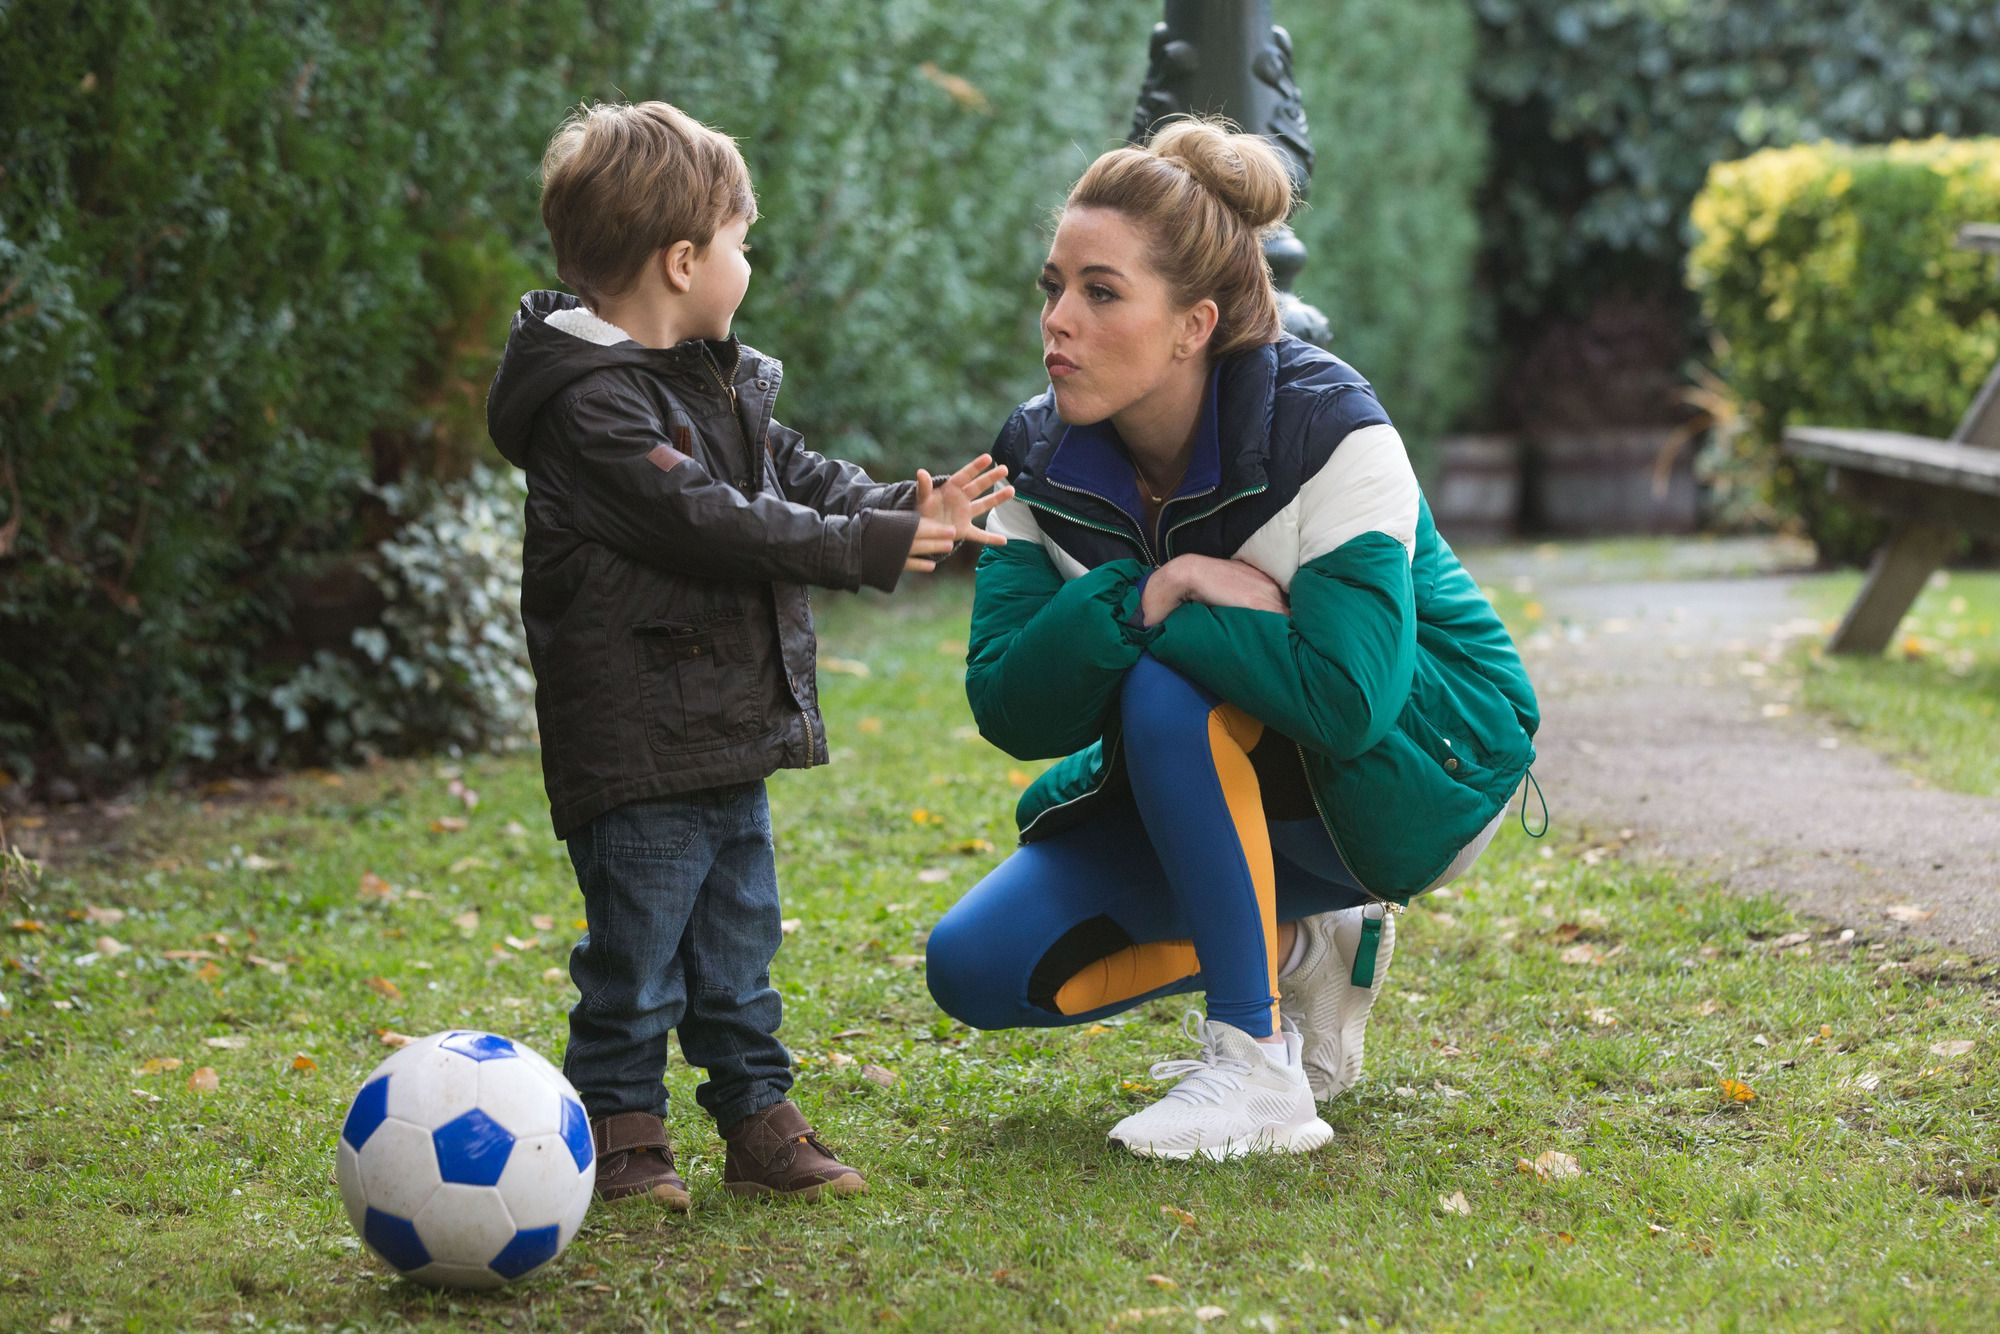 Mick Carter plays football with Megan and Ollie in EastEnders